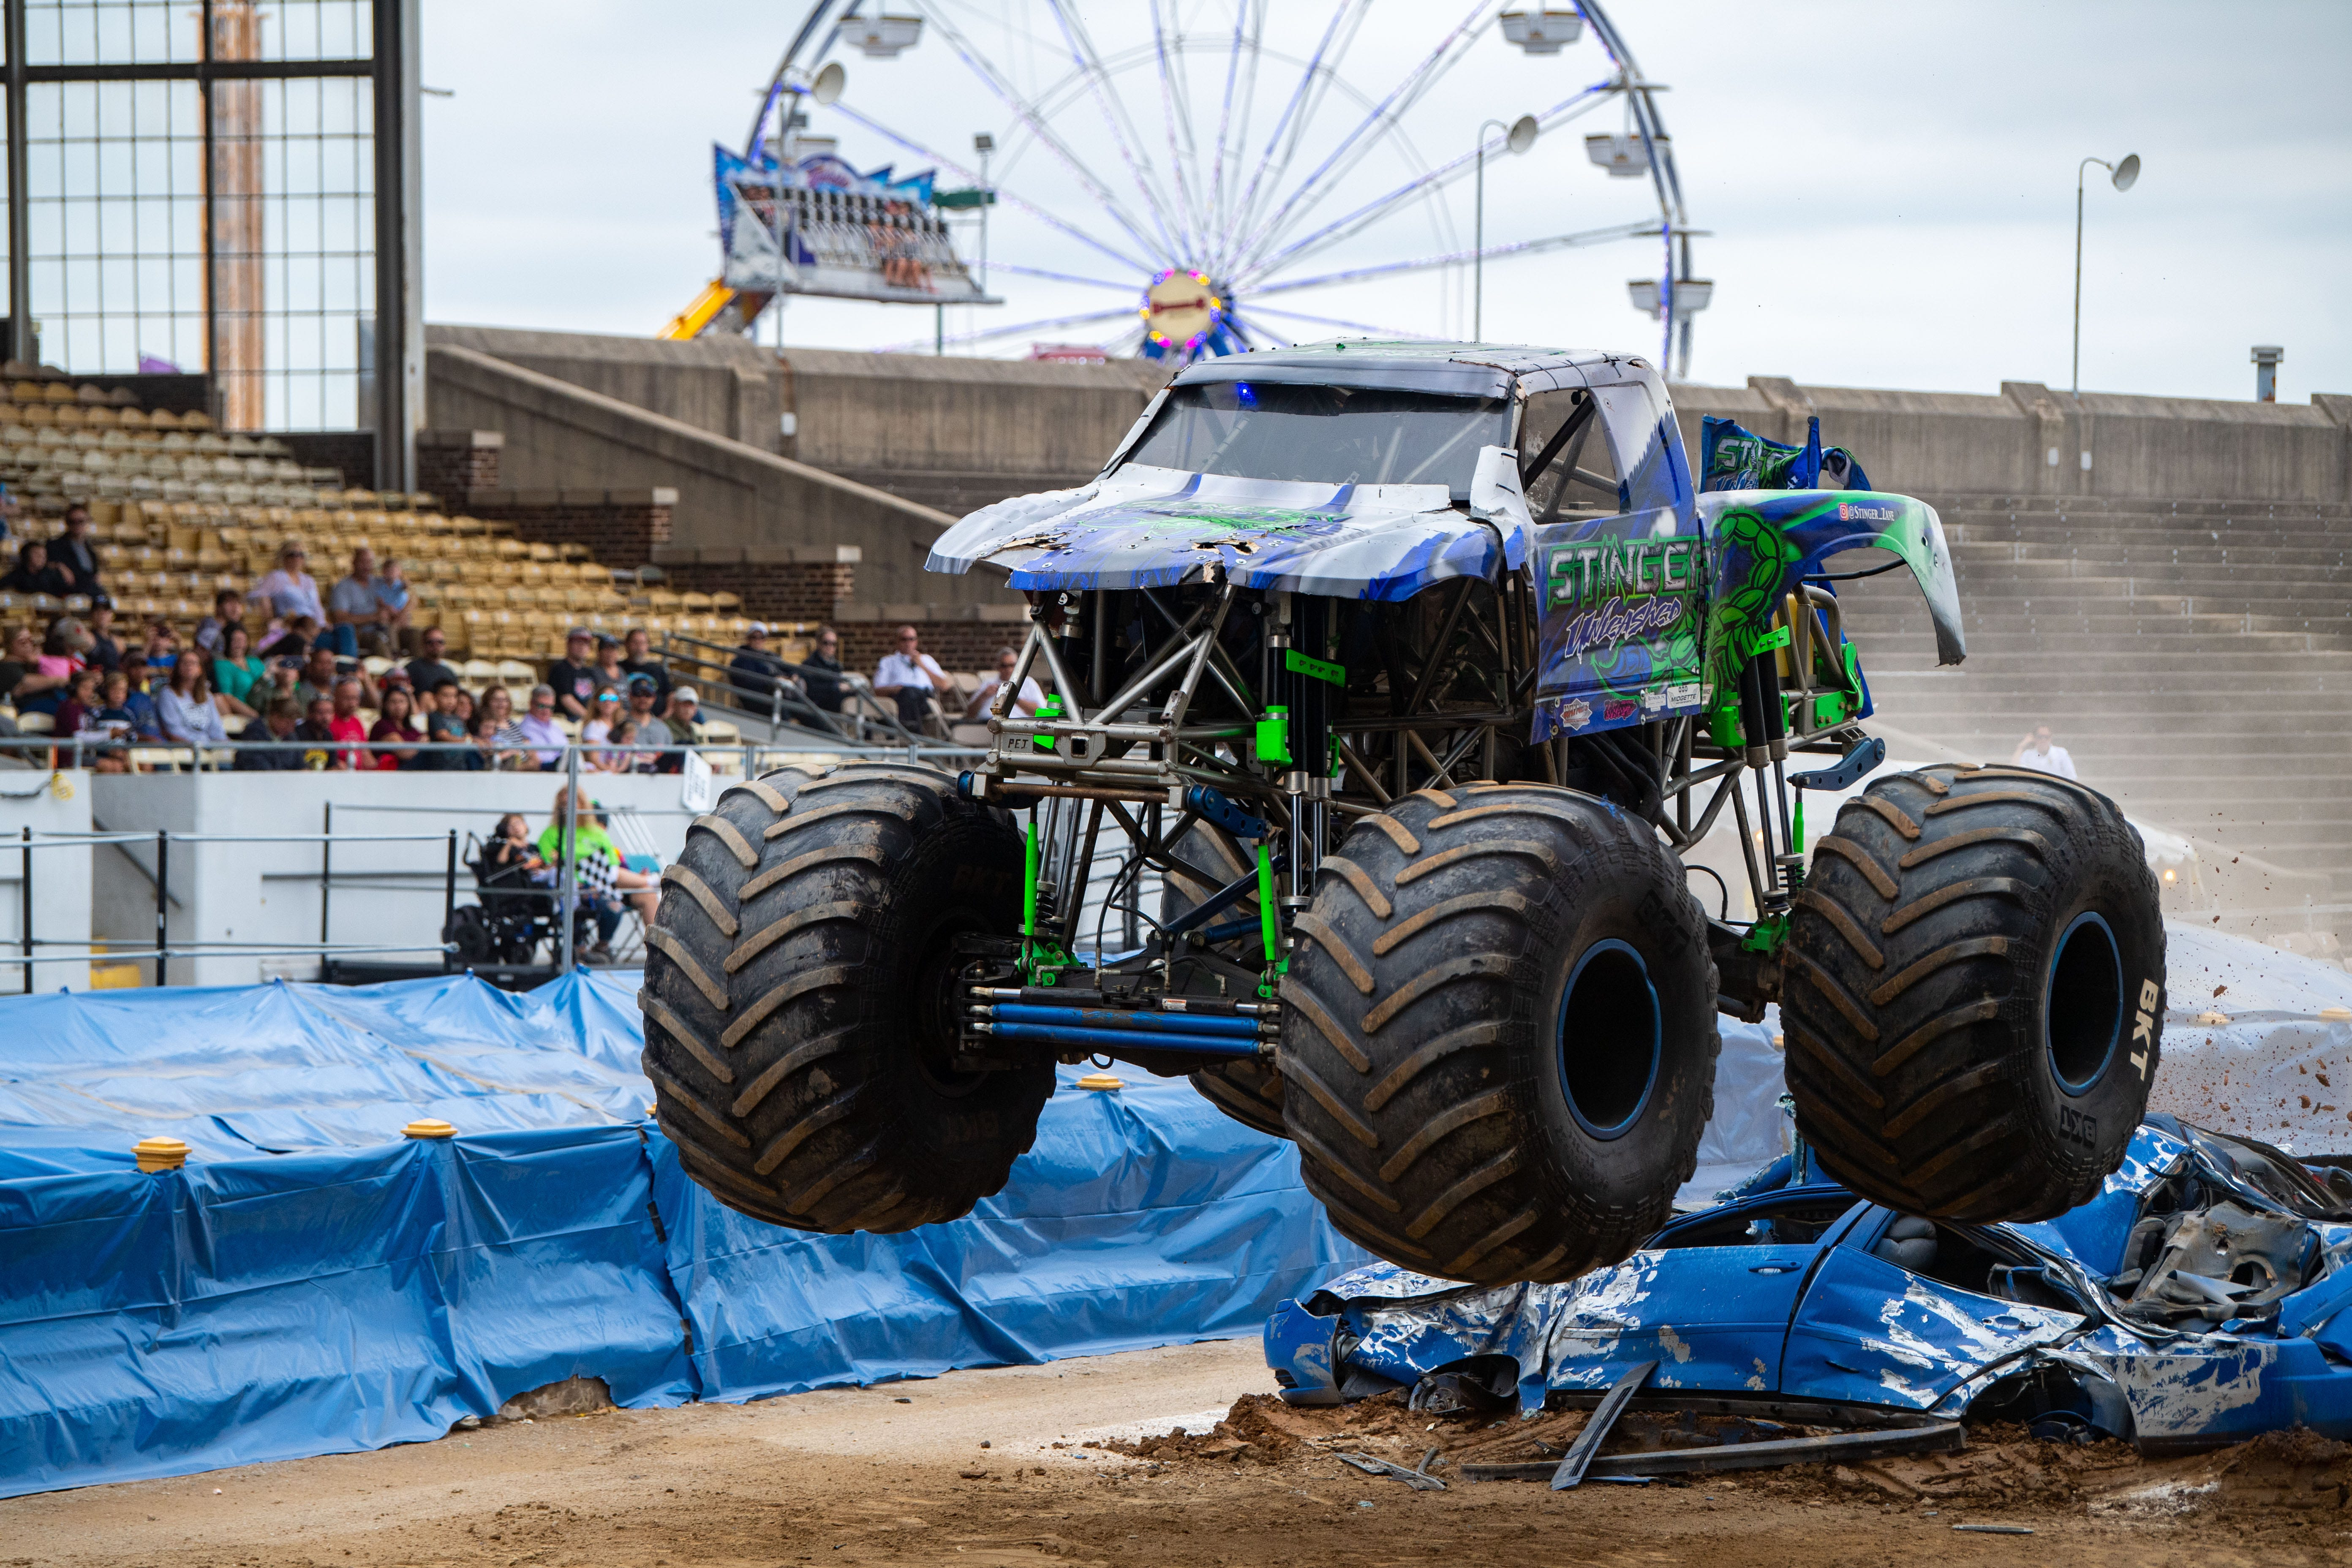 Check Out What The Monster Trucks At The York Fair Can Do